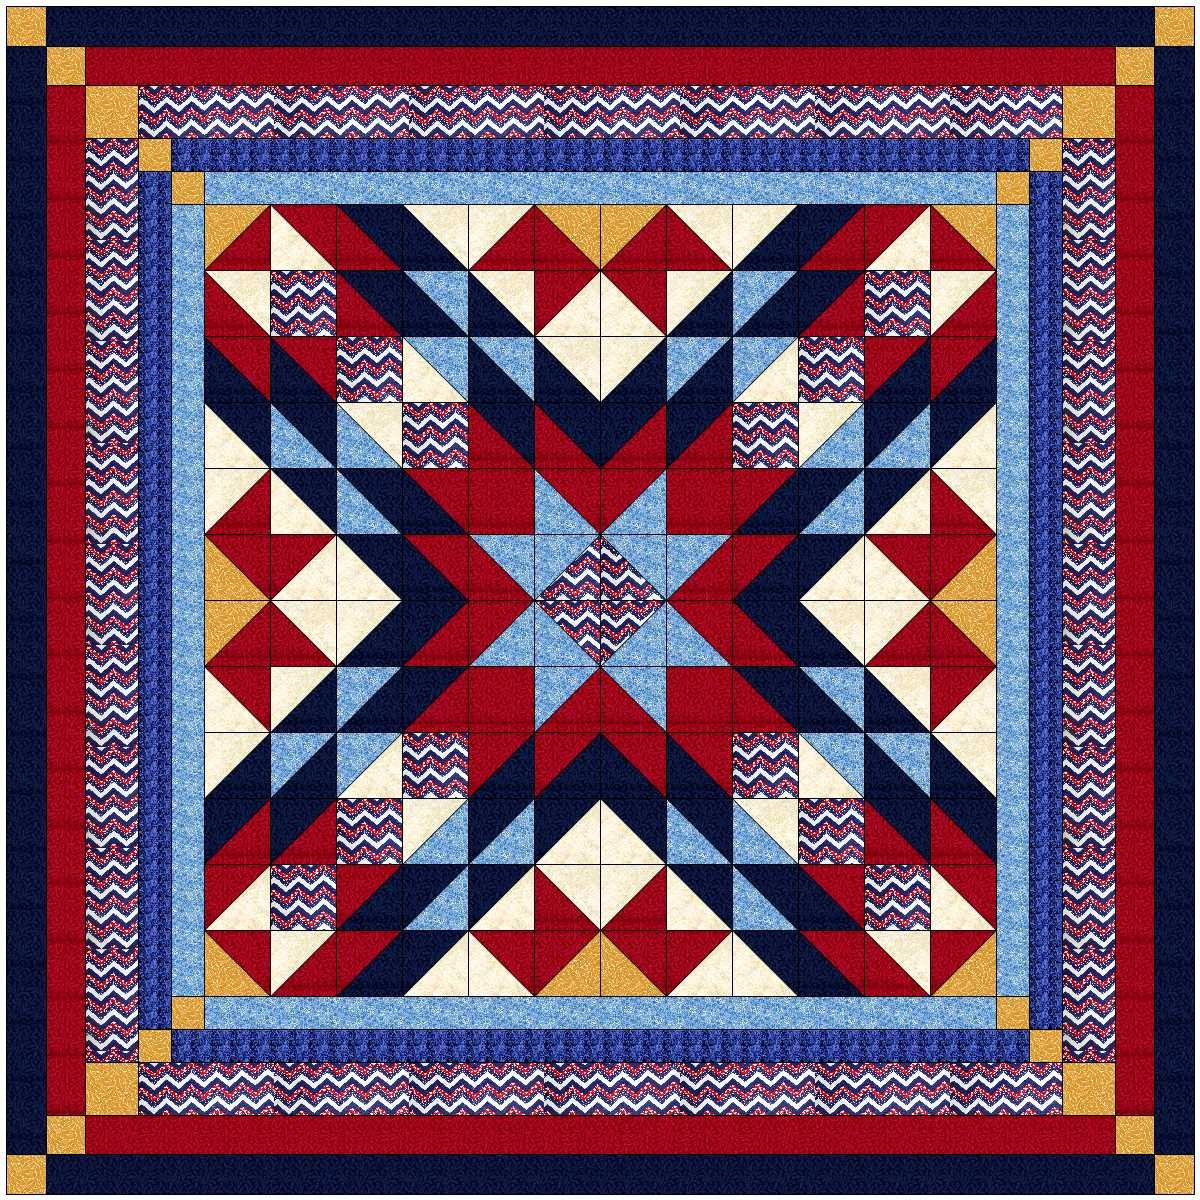 Easy Quilt Kit Patriotic Starburst/Queen/Expedited Shipping Galaxy/RJR